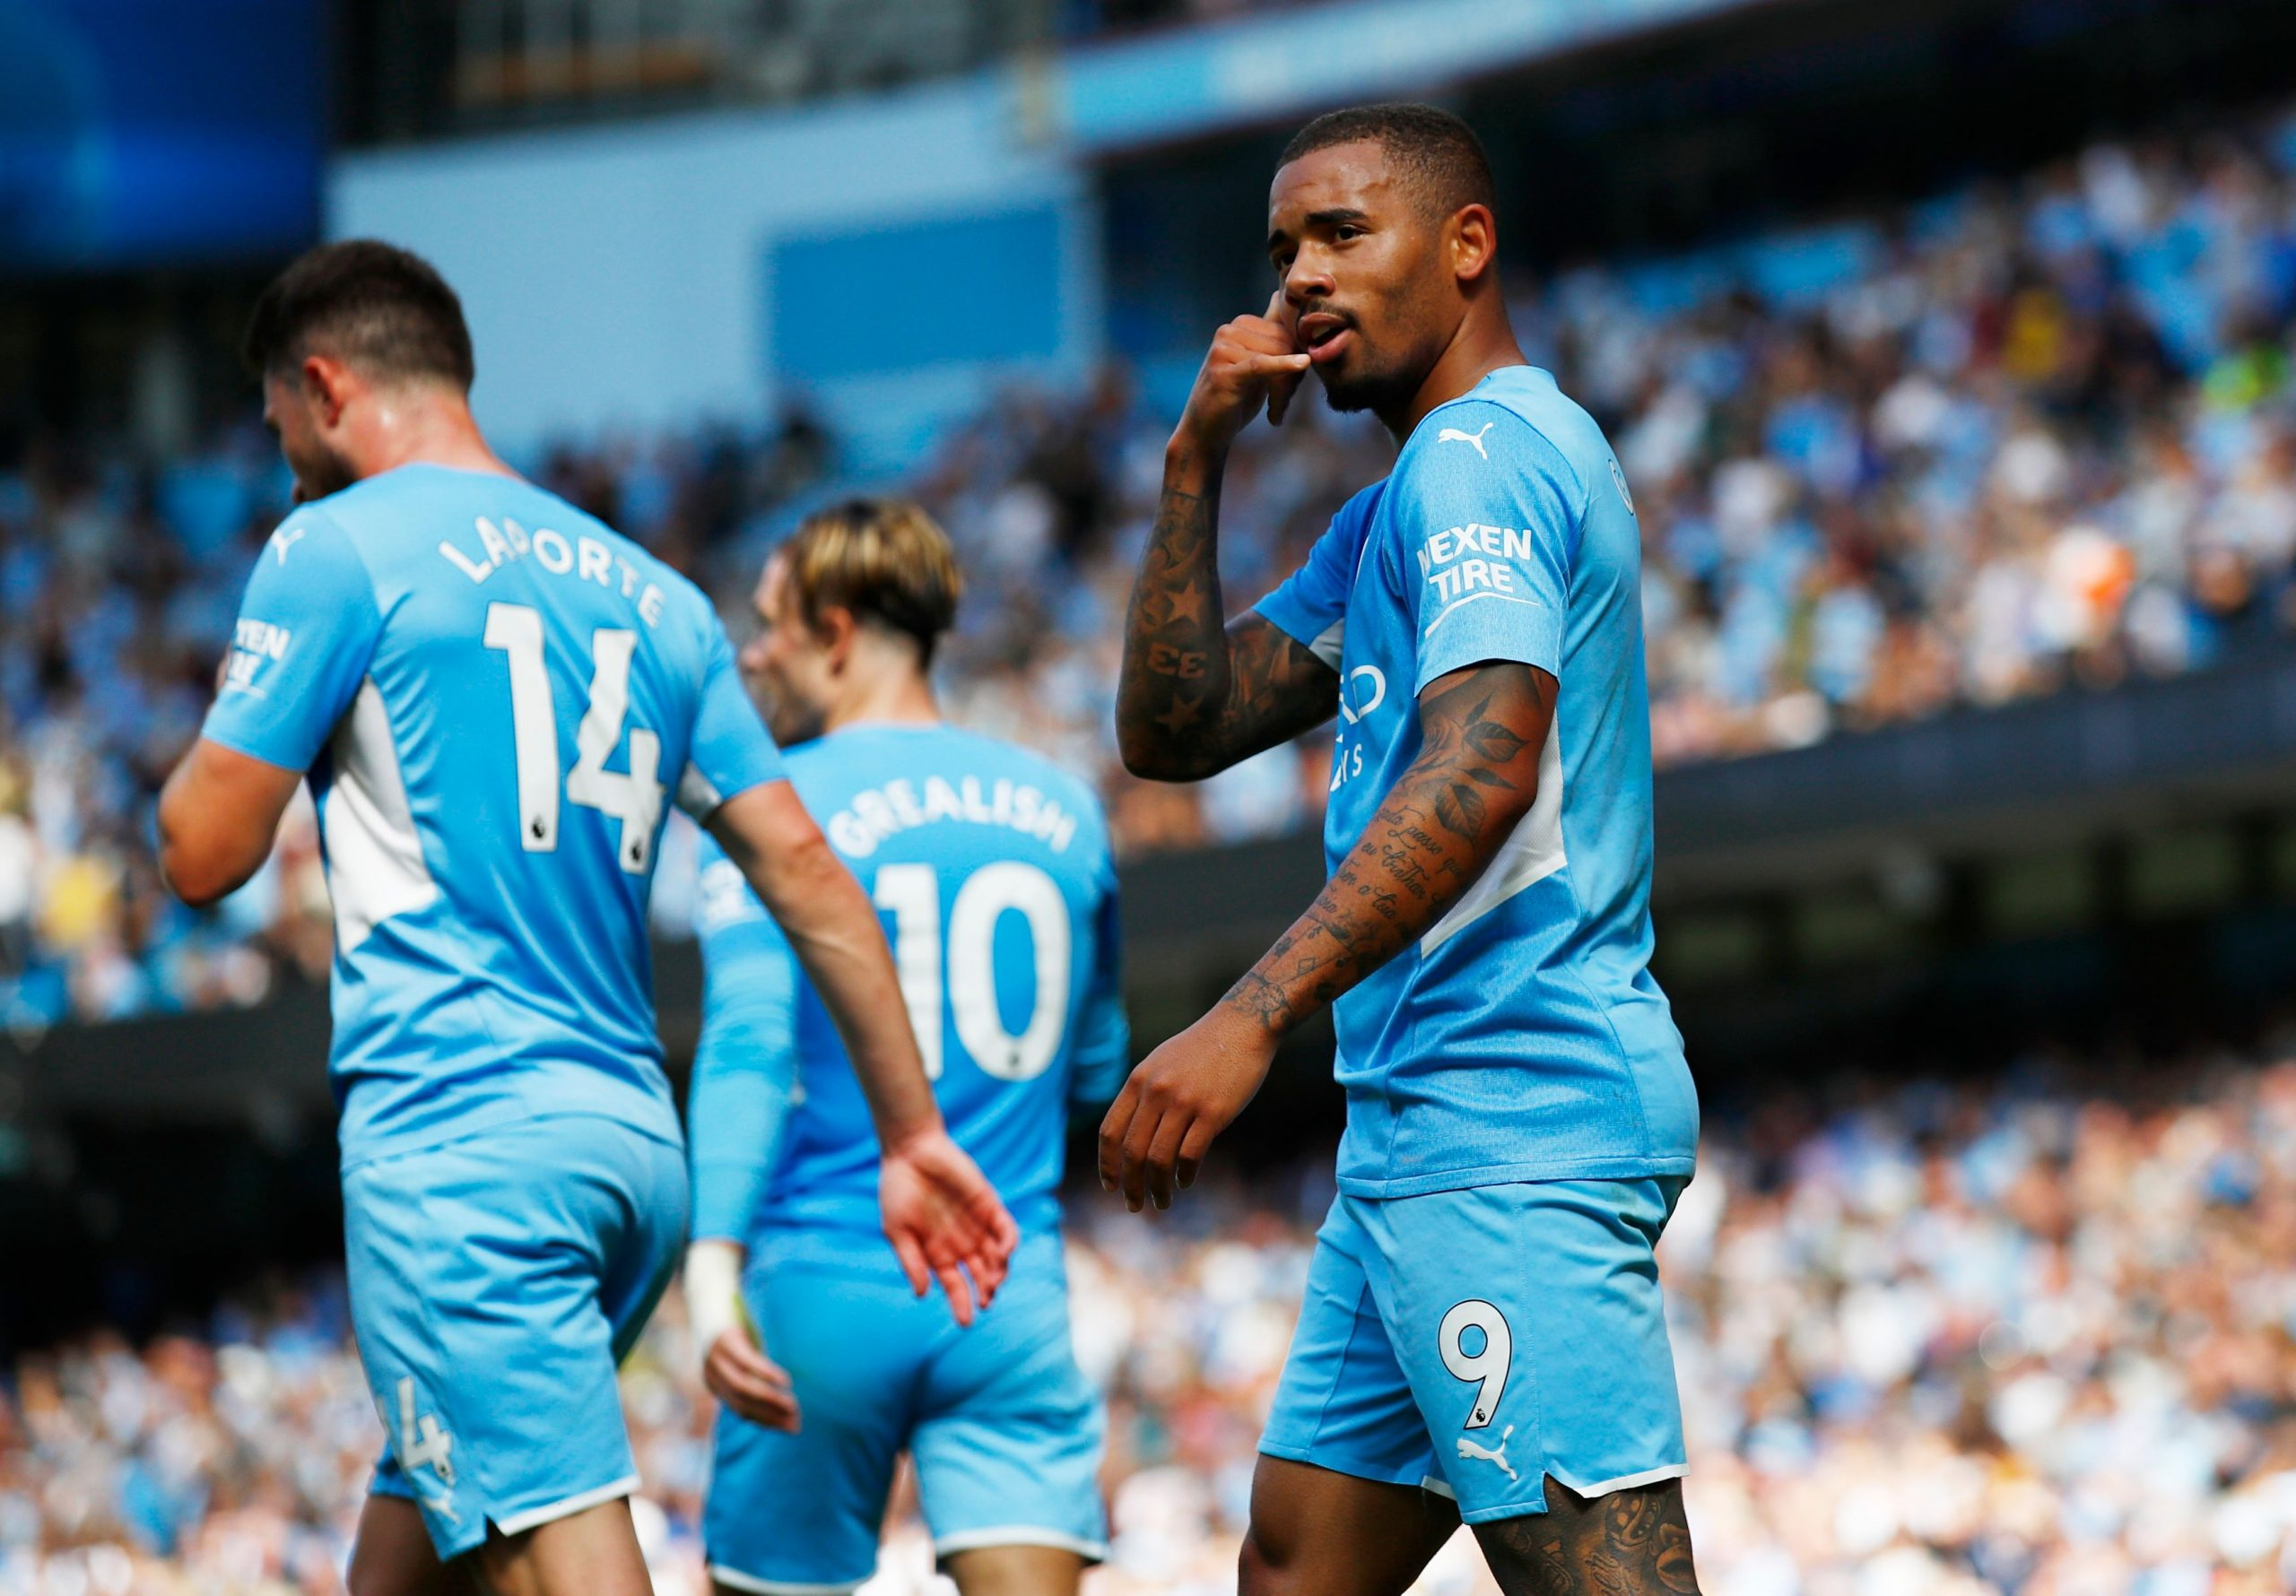 EPL: Manchester City Routs Arsenal 5-0; Liverpool and Chelsea Draw